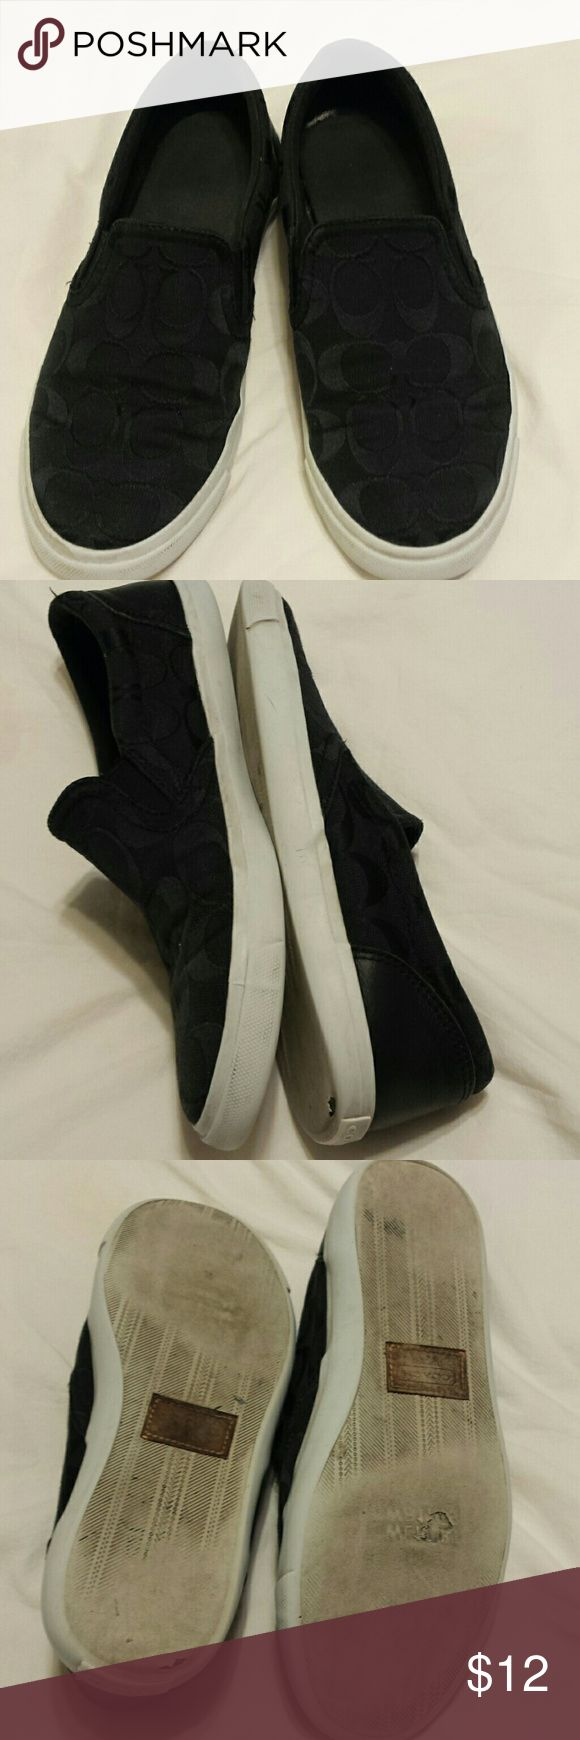 Coach Sneakers Looks great on top, worn on soles, still some wear on them. Too tight for me.😕 or I'd keep them. Coach Shoes Sneakers